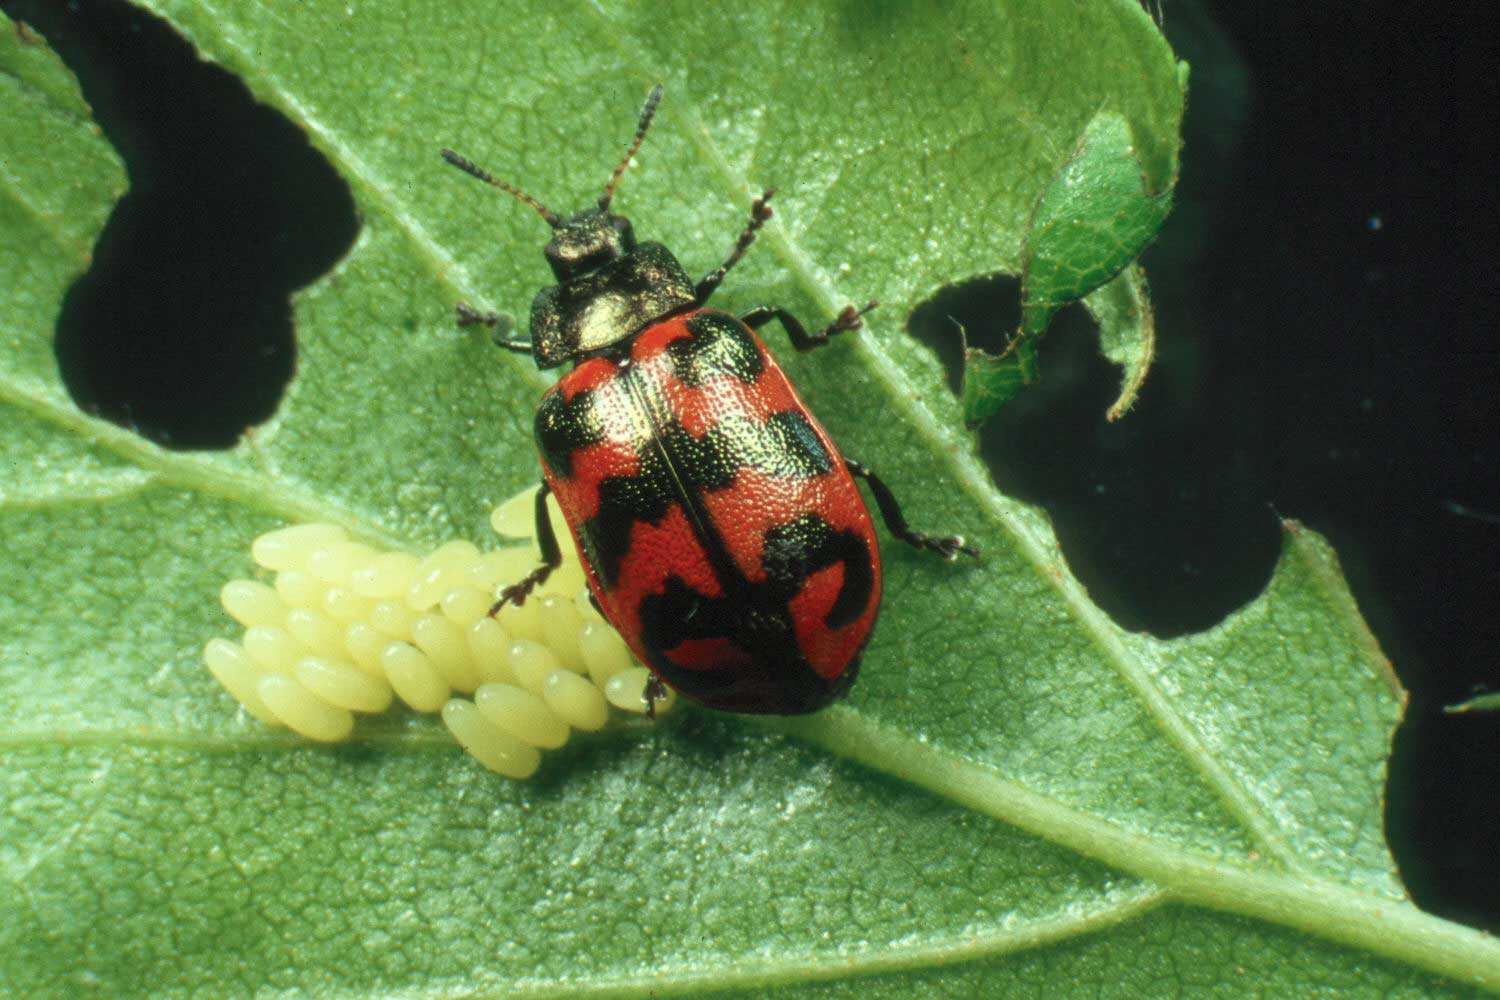 A female Chrysomela lapponica beetle laying eggs on her host plant. C. lapponica is one of four species of leaf-eating beetles monitored in a study of how changes in climate and pollution affect insect population dynamics in a subarctic forest. Image credit: Juergen Gross (Own work) [CC BY-SA 3.0 (http://creativecommons.org/licenses/by-sa/3.0)